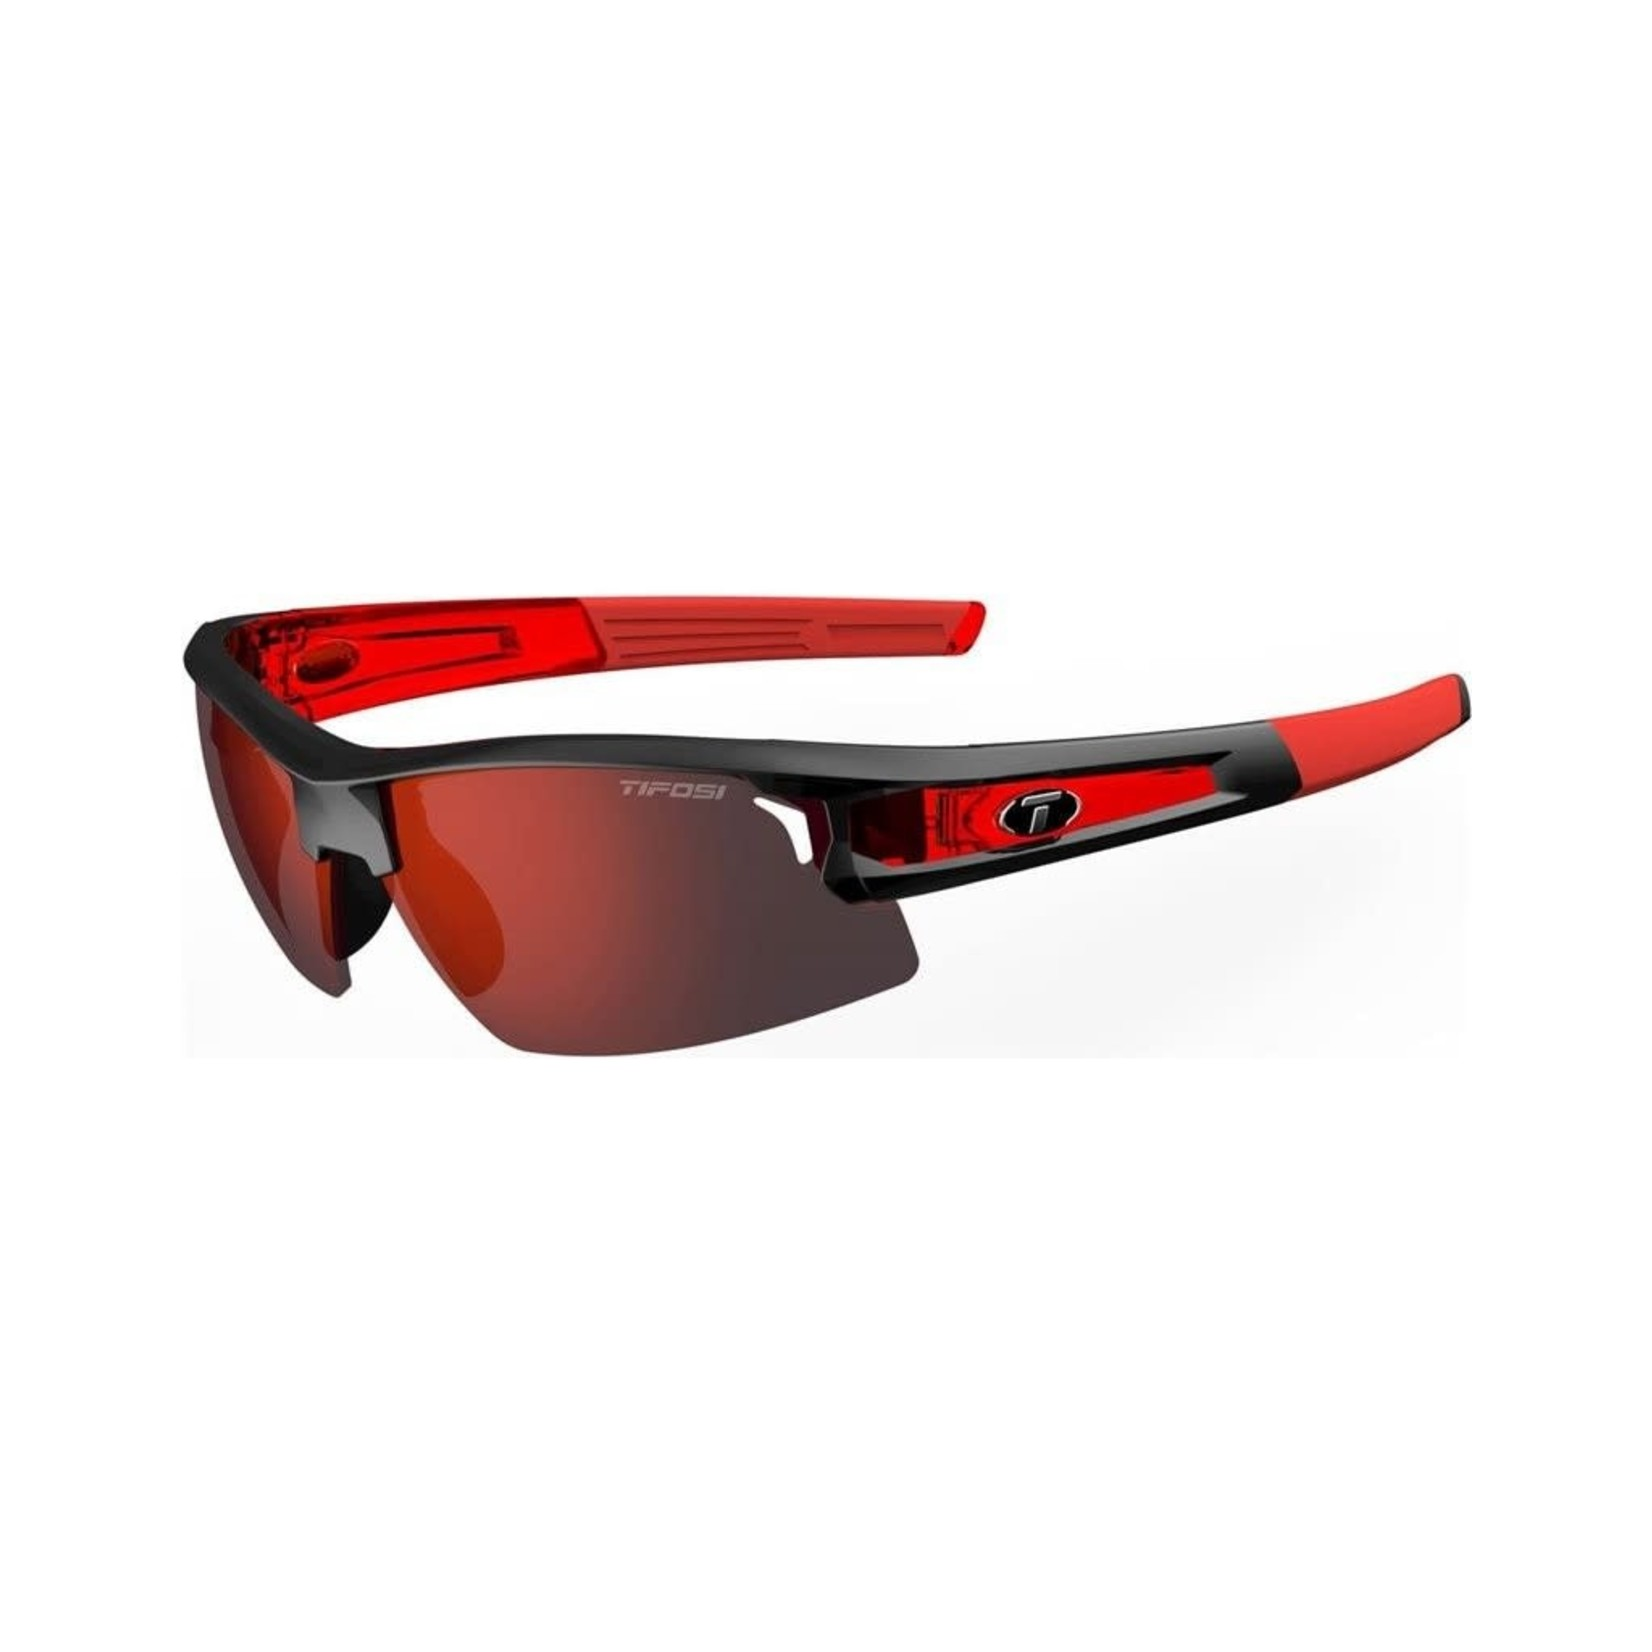 TIFOSI OPTICS Sunglasses Tifosi Synapse Race Red Interchangeable Clarion Red/AC Red/Clear